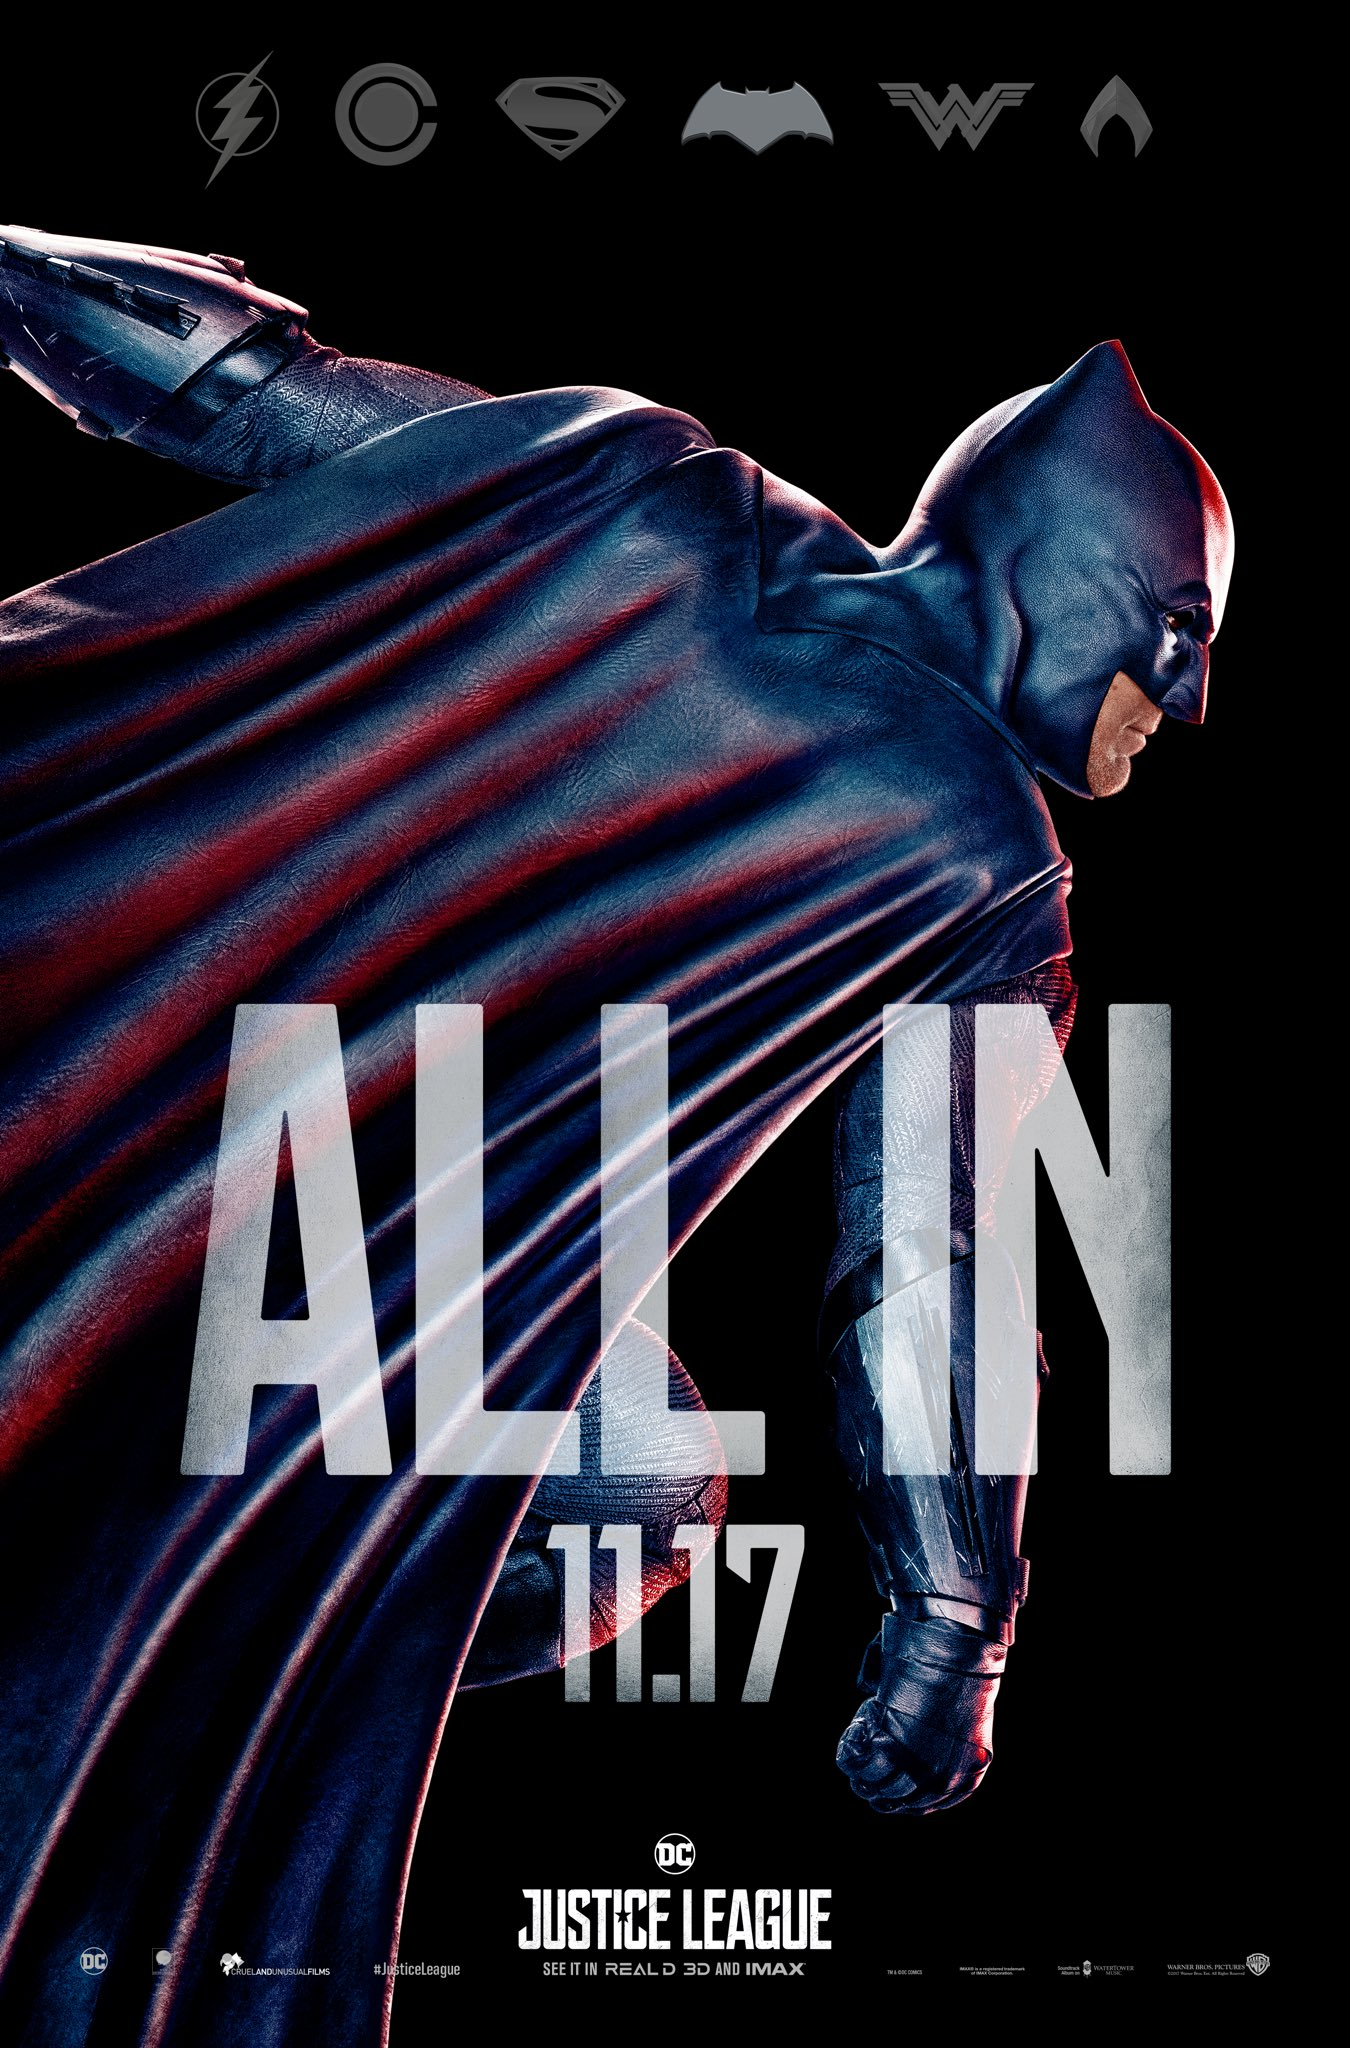 justice league movie images justice league - all in poster - batman